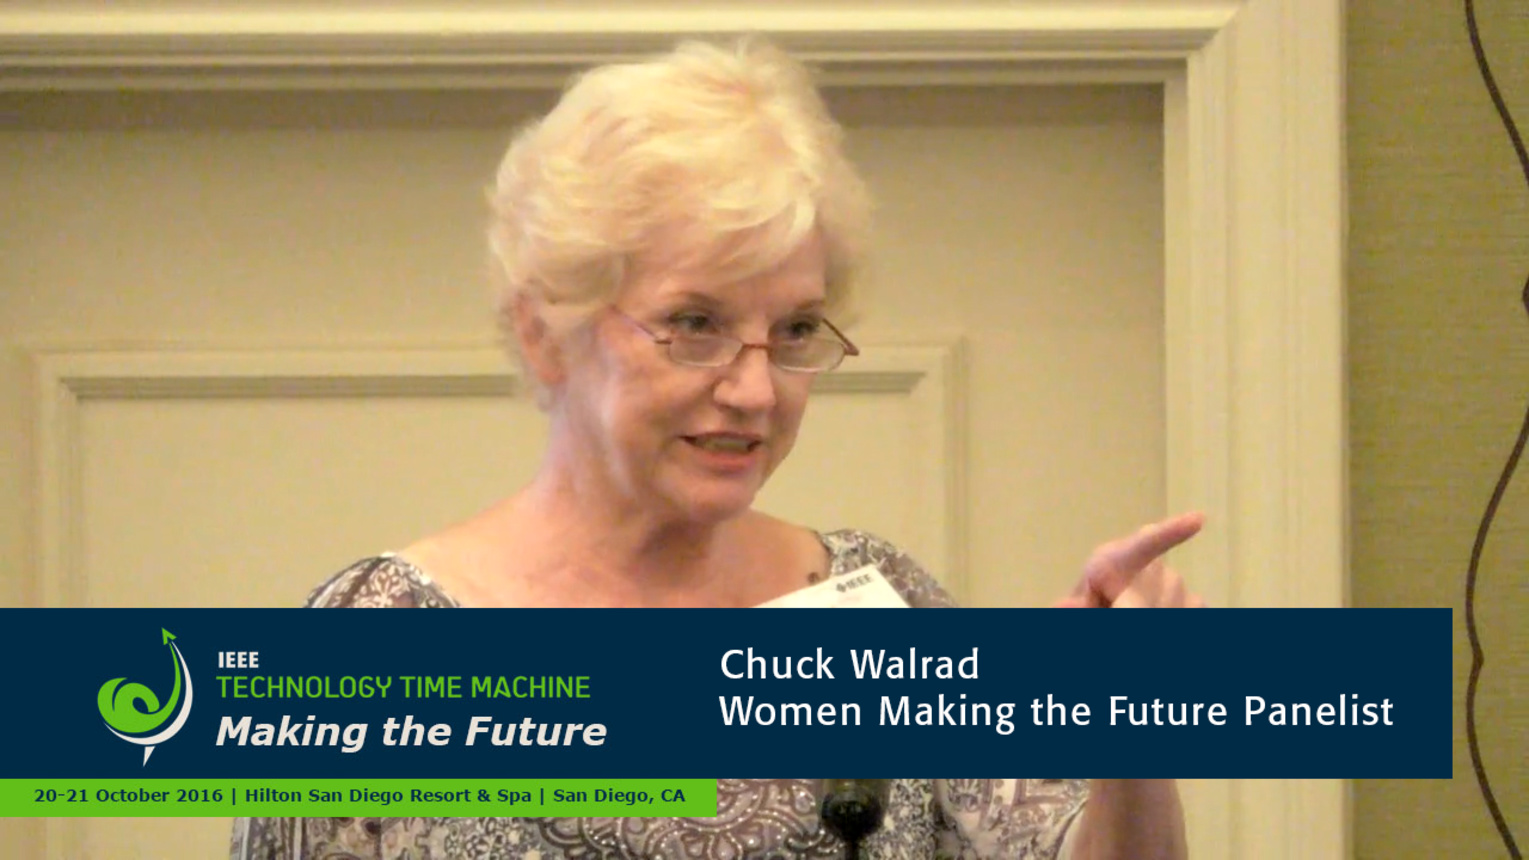 Women Making the Future Panelist - Chuck Walrad: 2016 Technology Time Machine